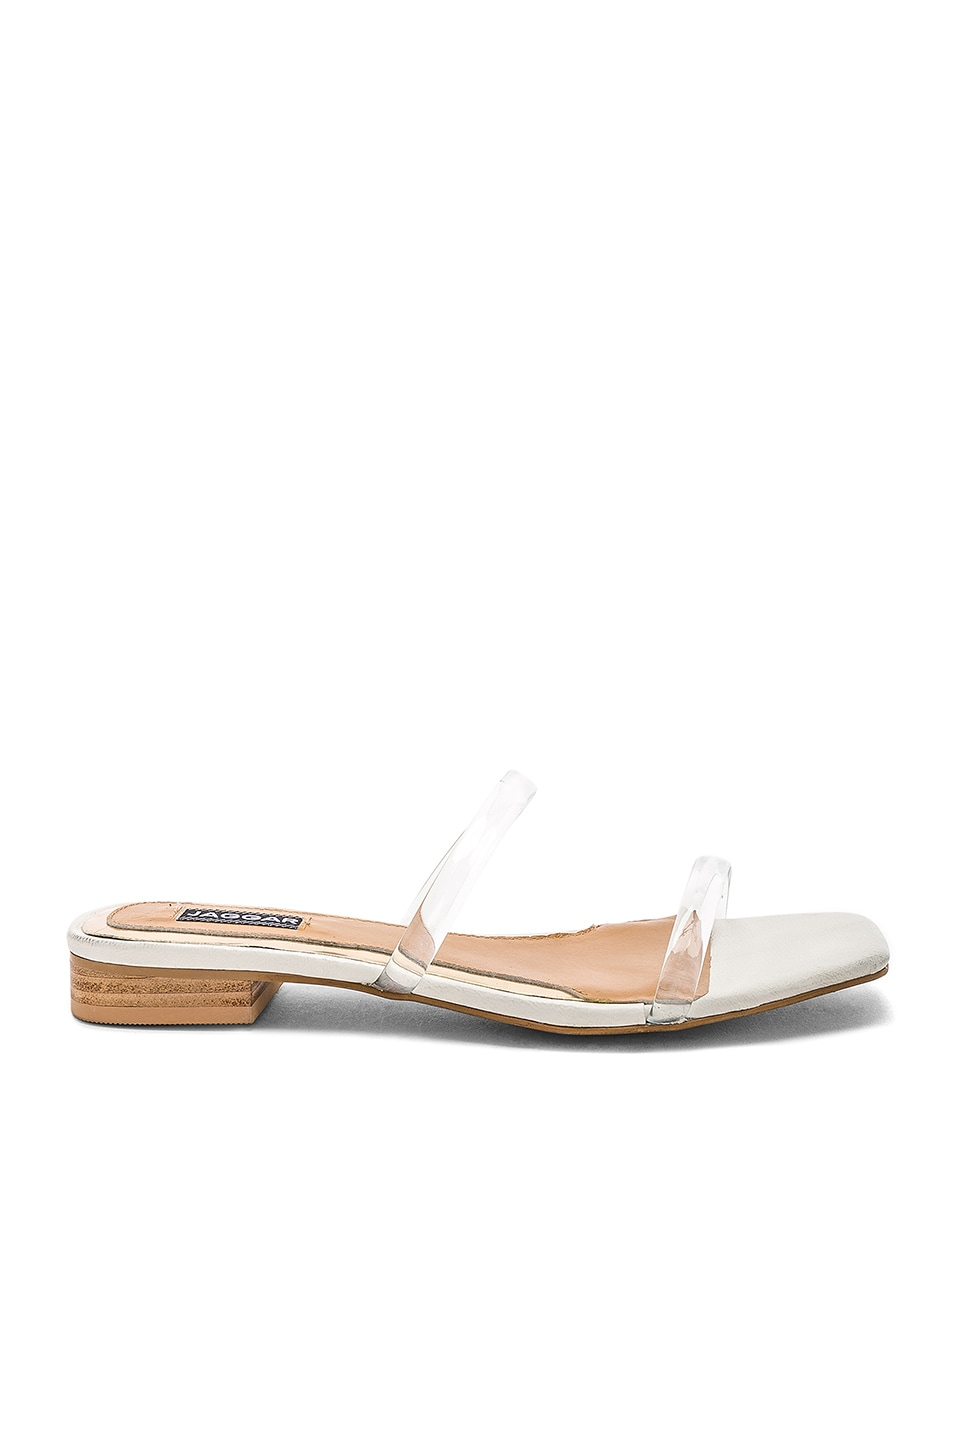 JAGGAR Perspex Sandal in Clear